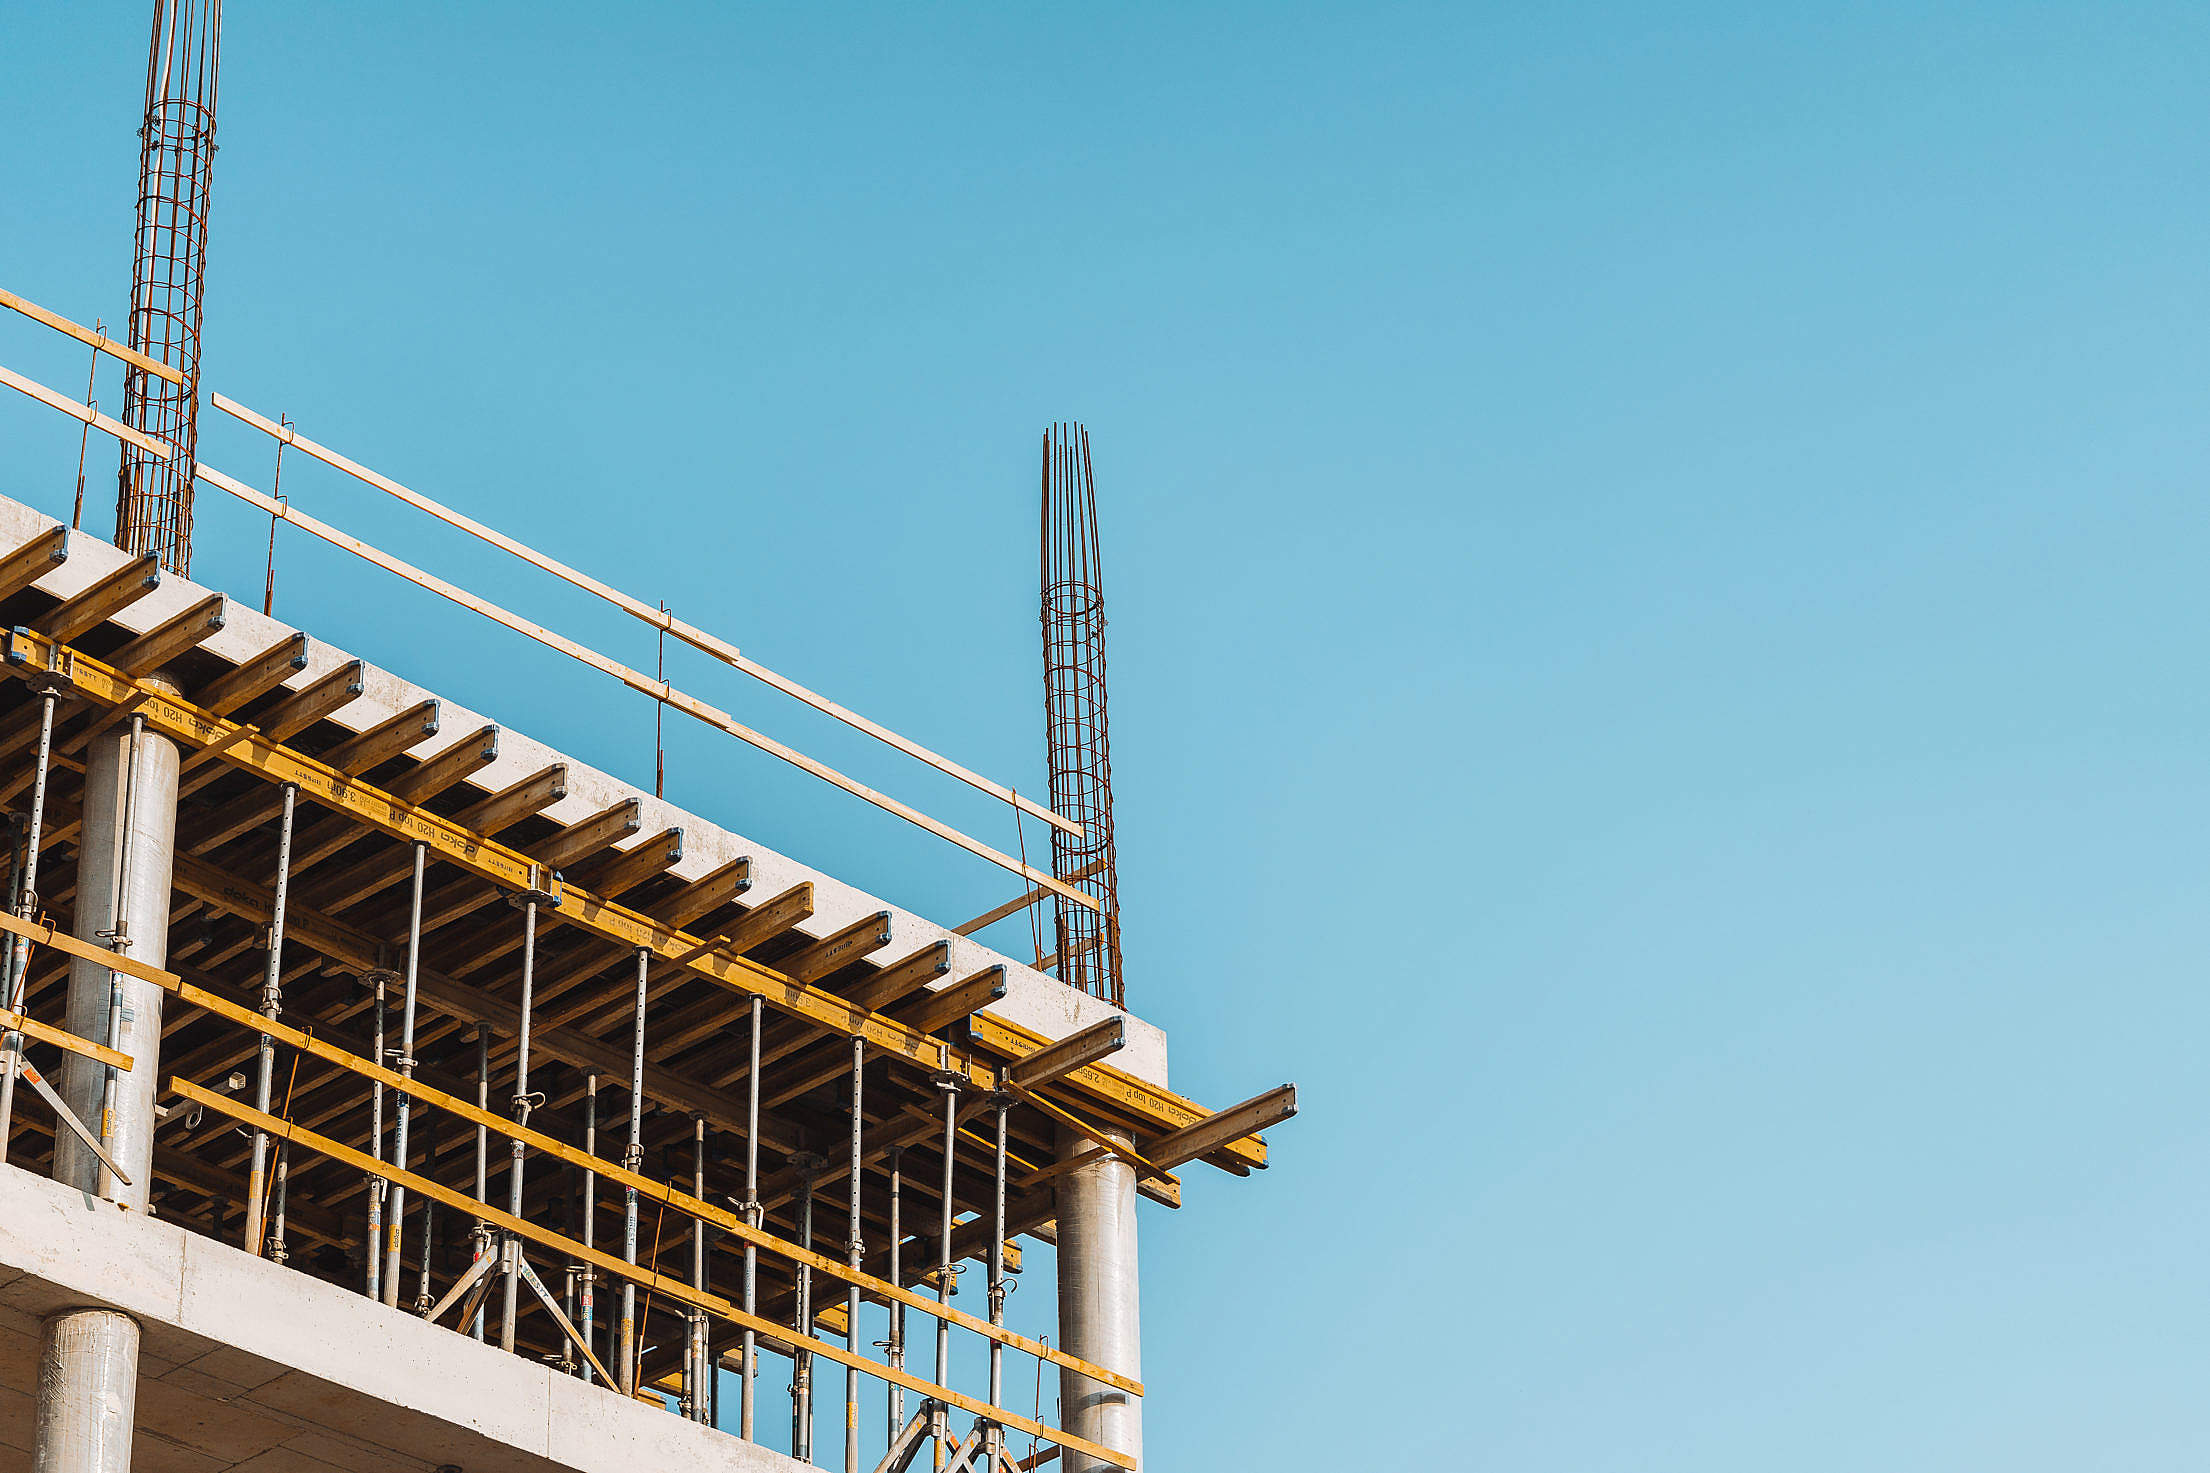 New Building Construction Site Free Stock Photo